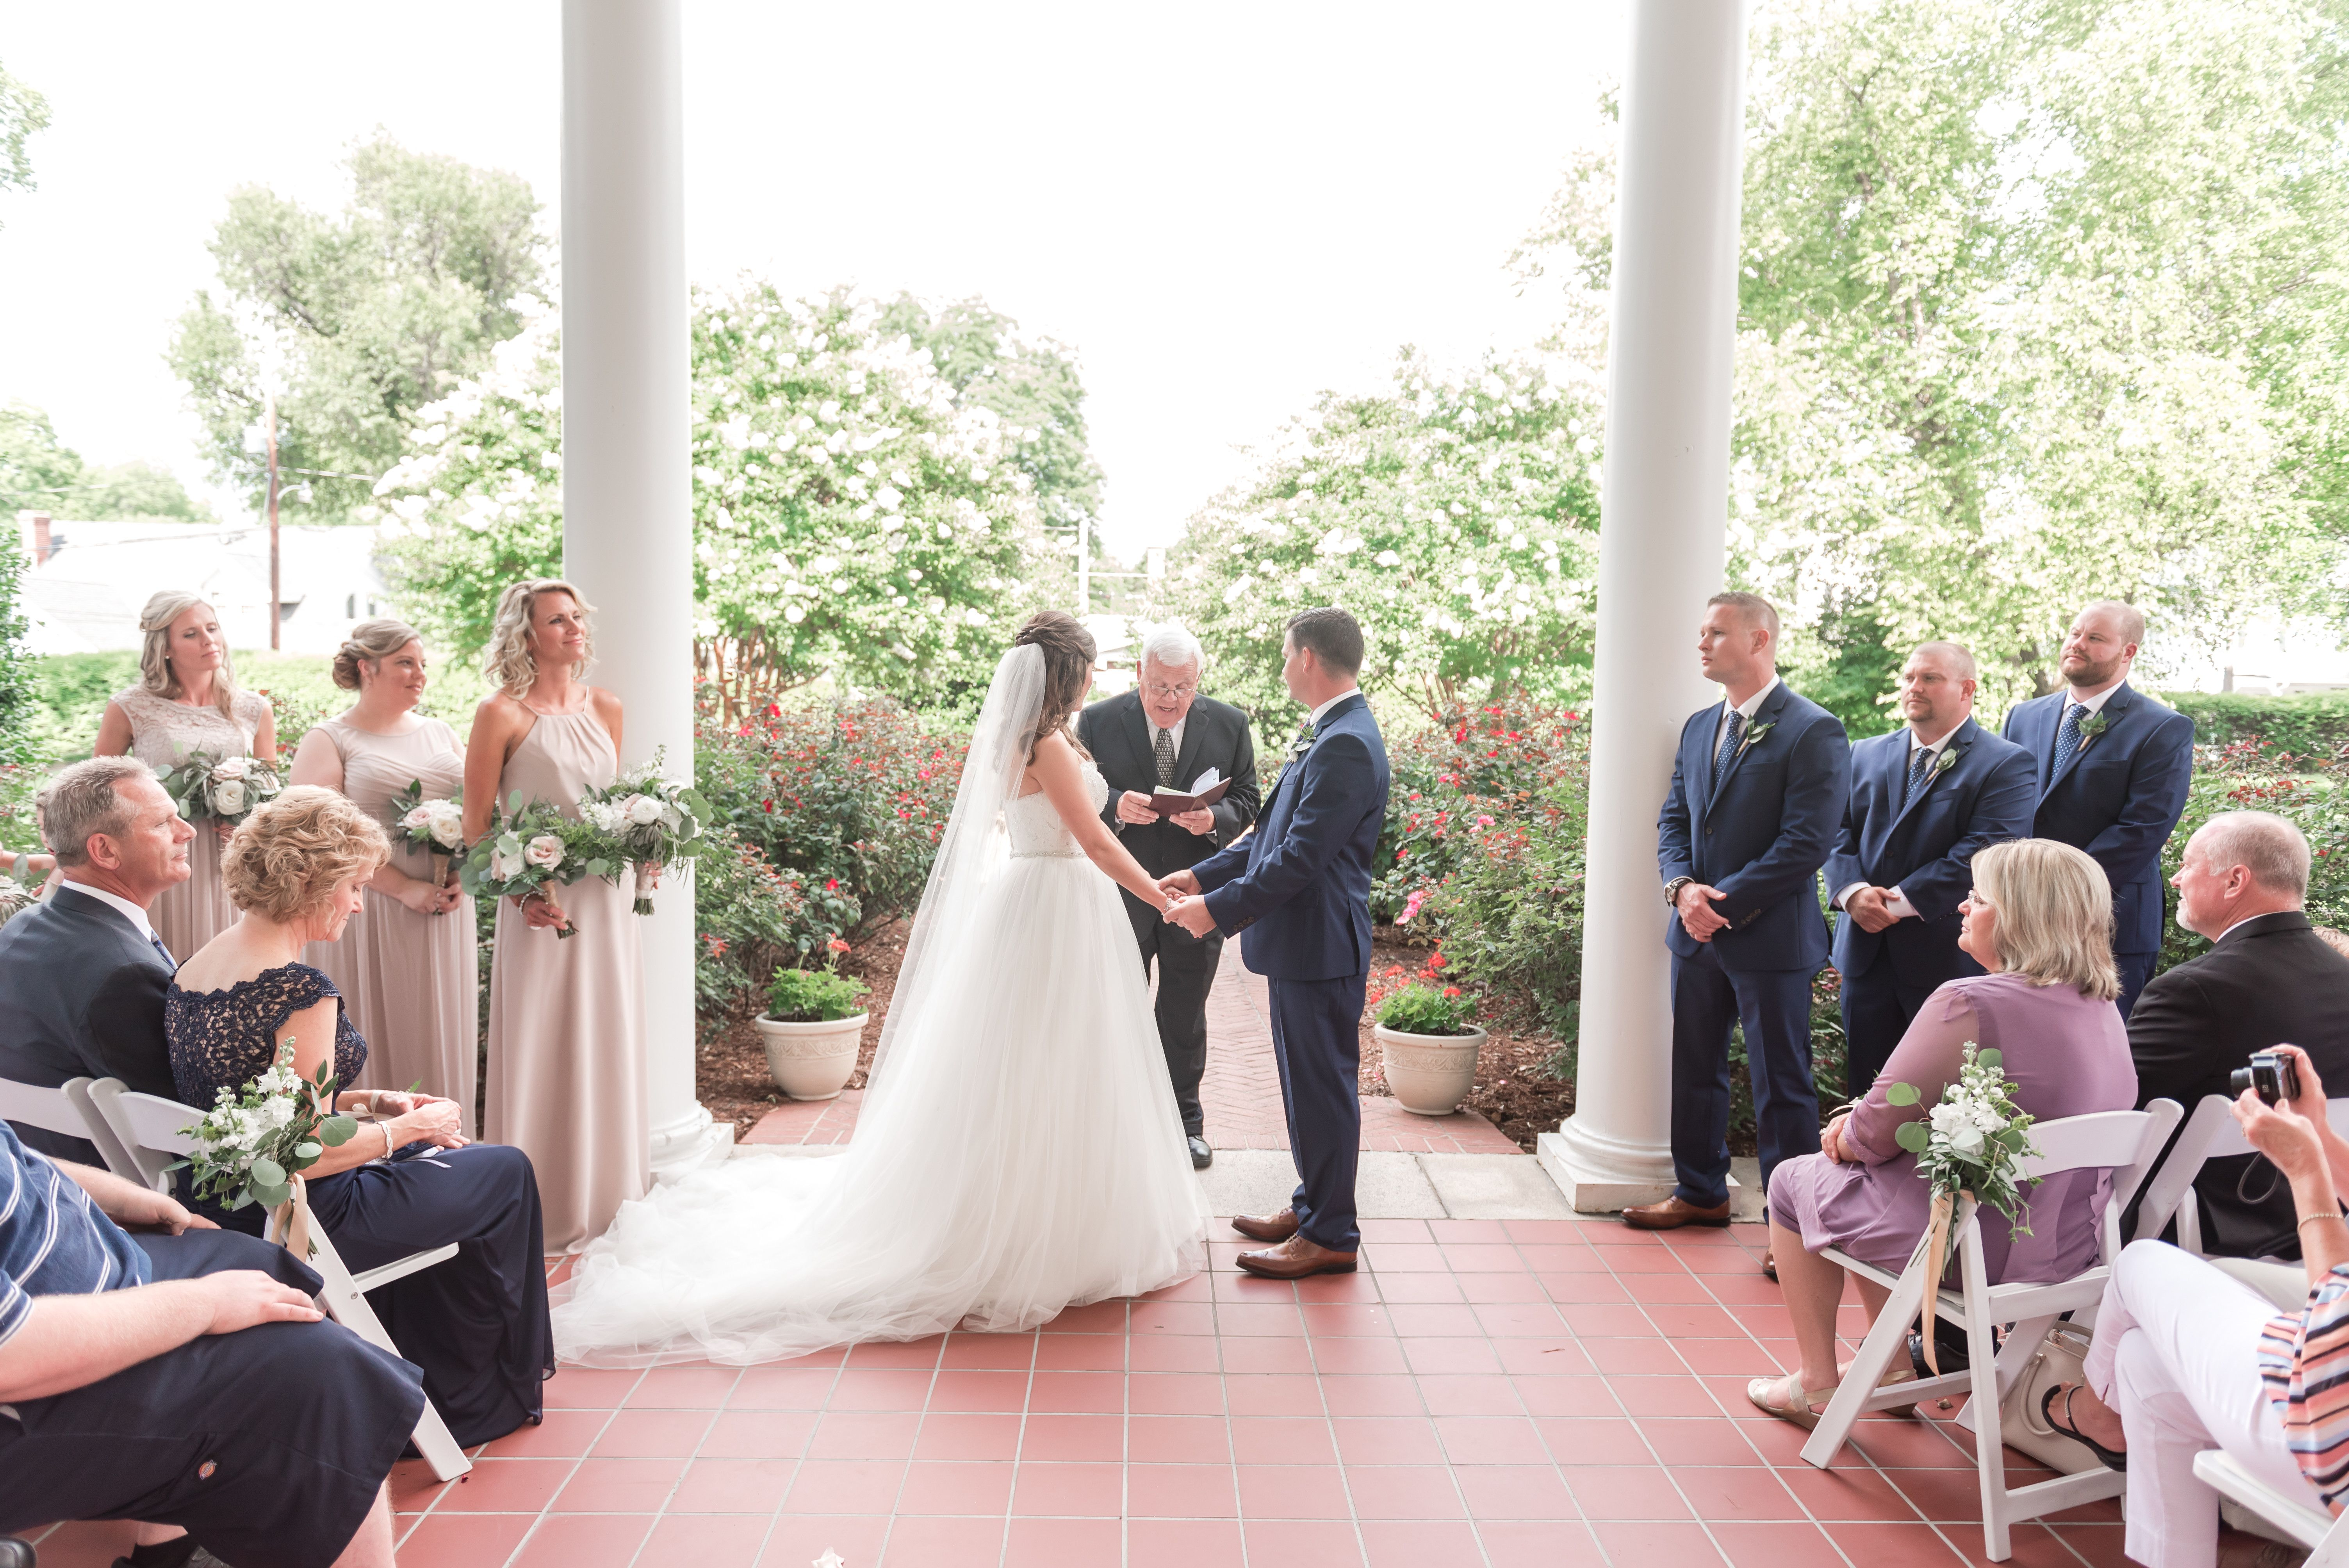 16+ Wedding places in greensboro nc information